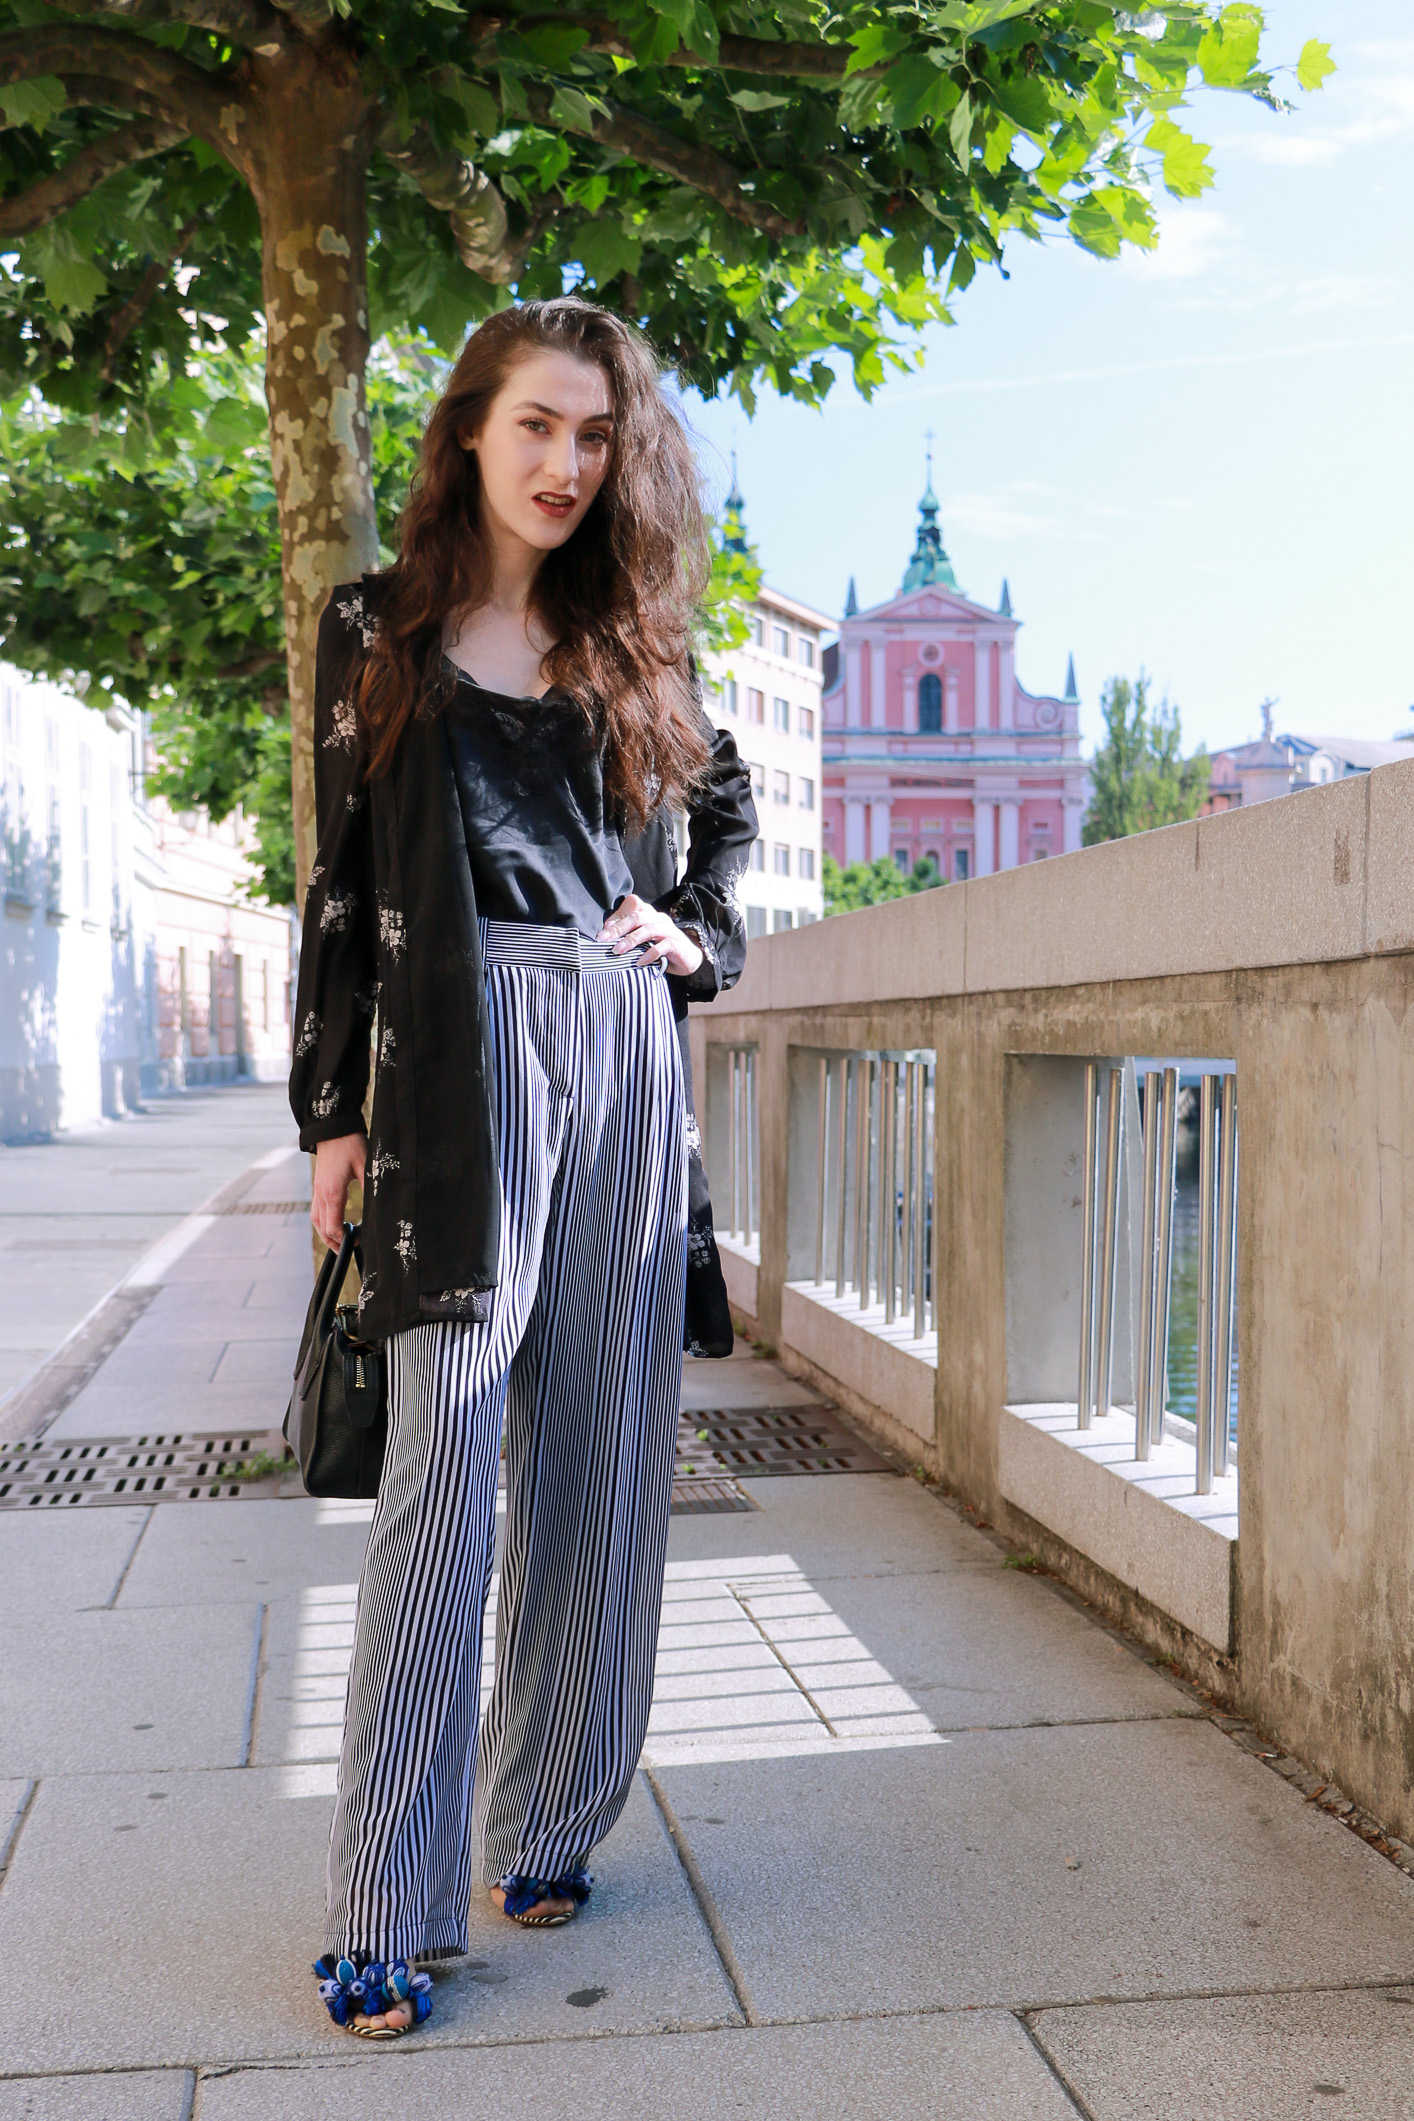 Fashion blogger Veronika Lipar of Brunette From Wall Street sharing how to style layers in the summer, wearing dark floral shirt dress and wide-leg trousers